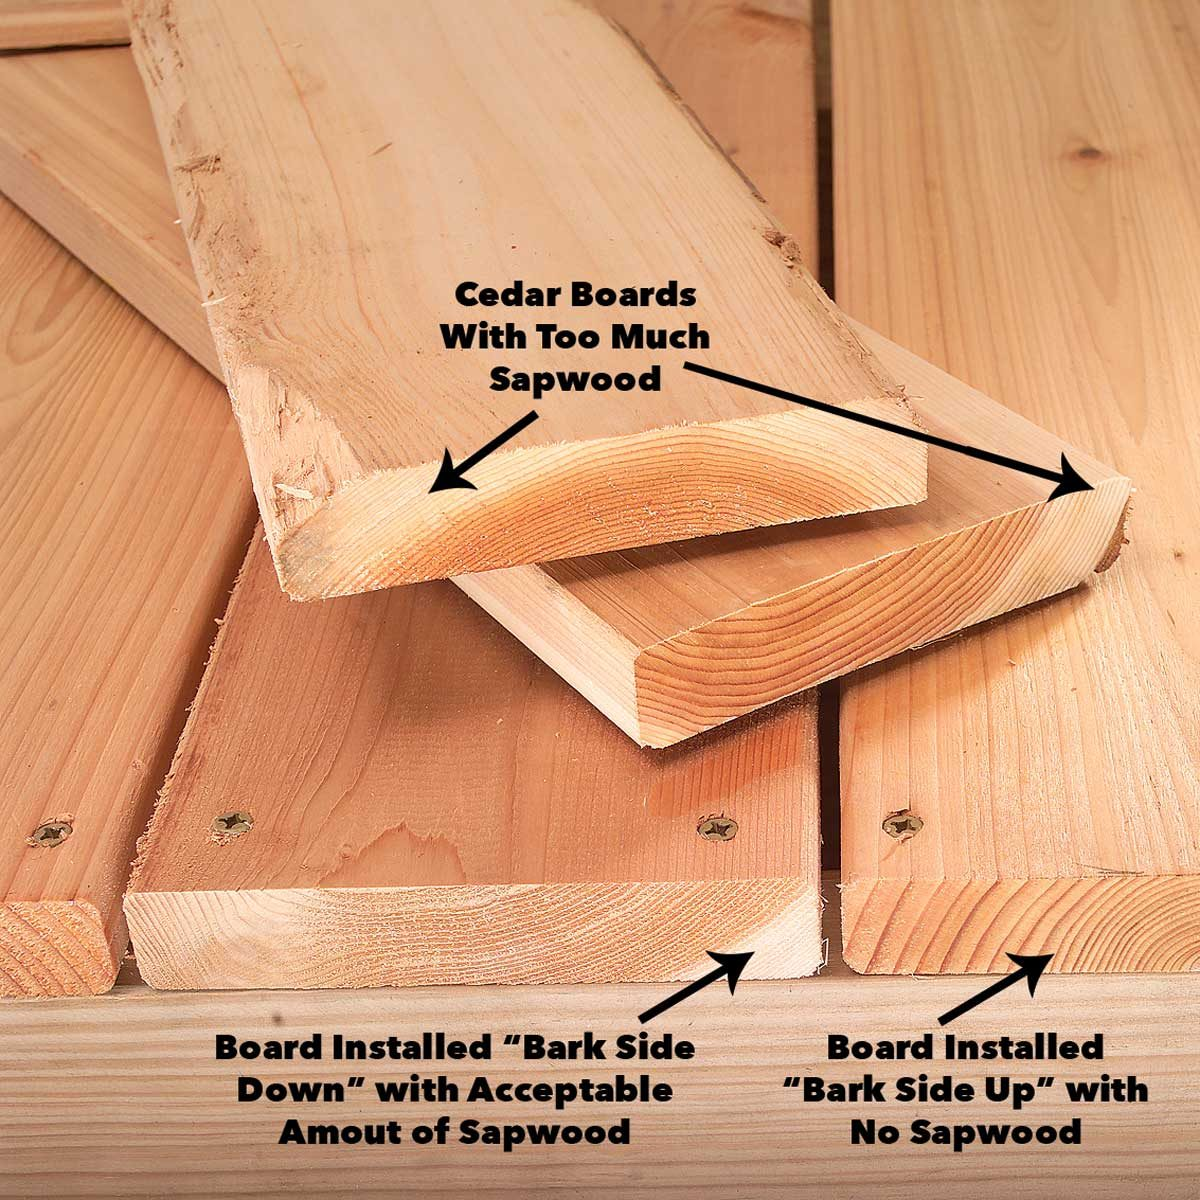 Home Depot Cedar Deck Boards How To Buy Decking Boards Lumber The Family Handyman